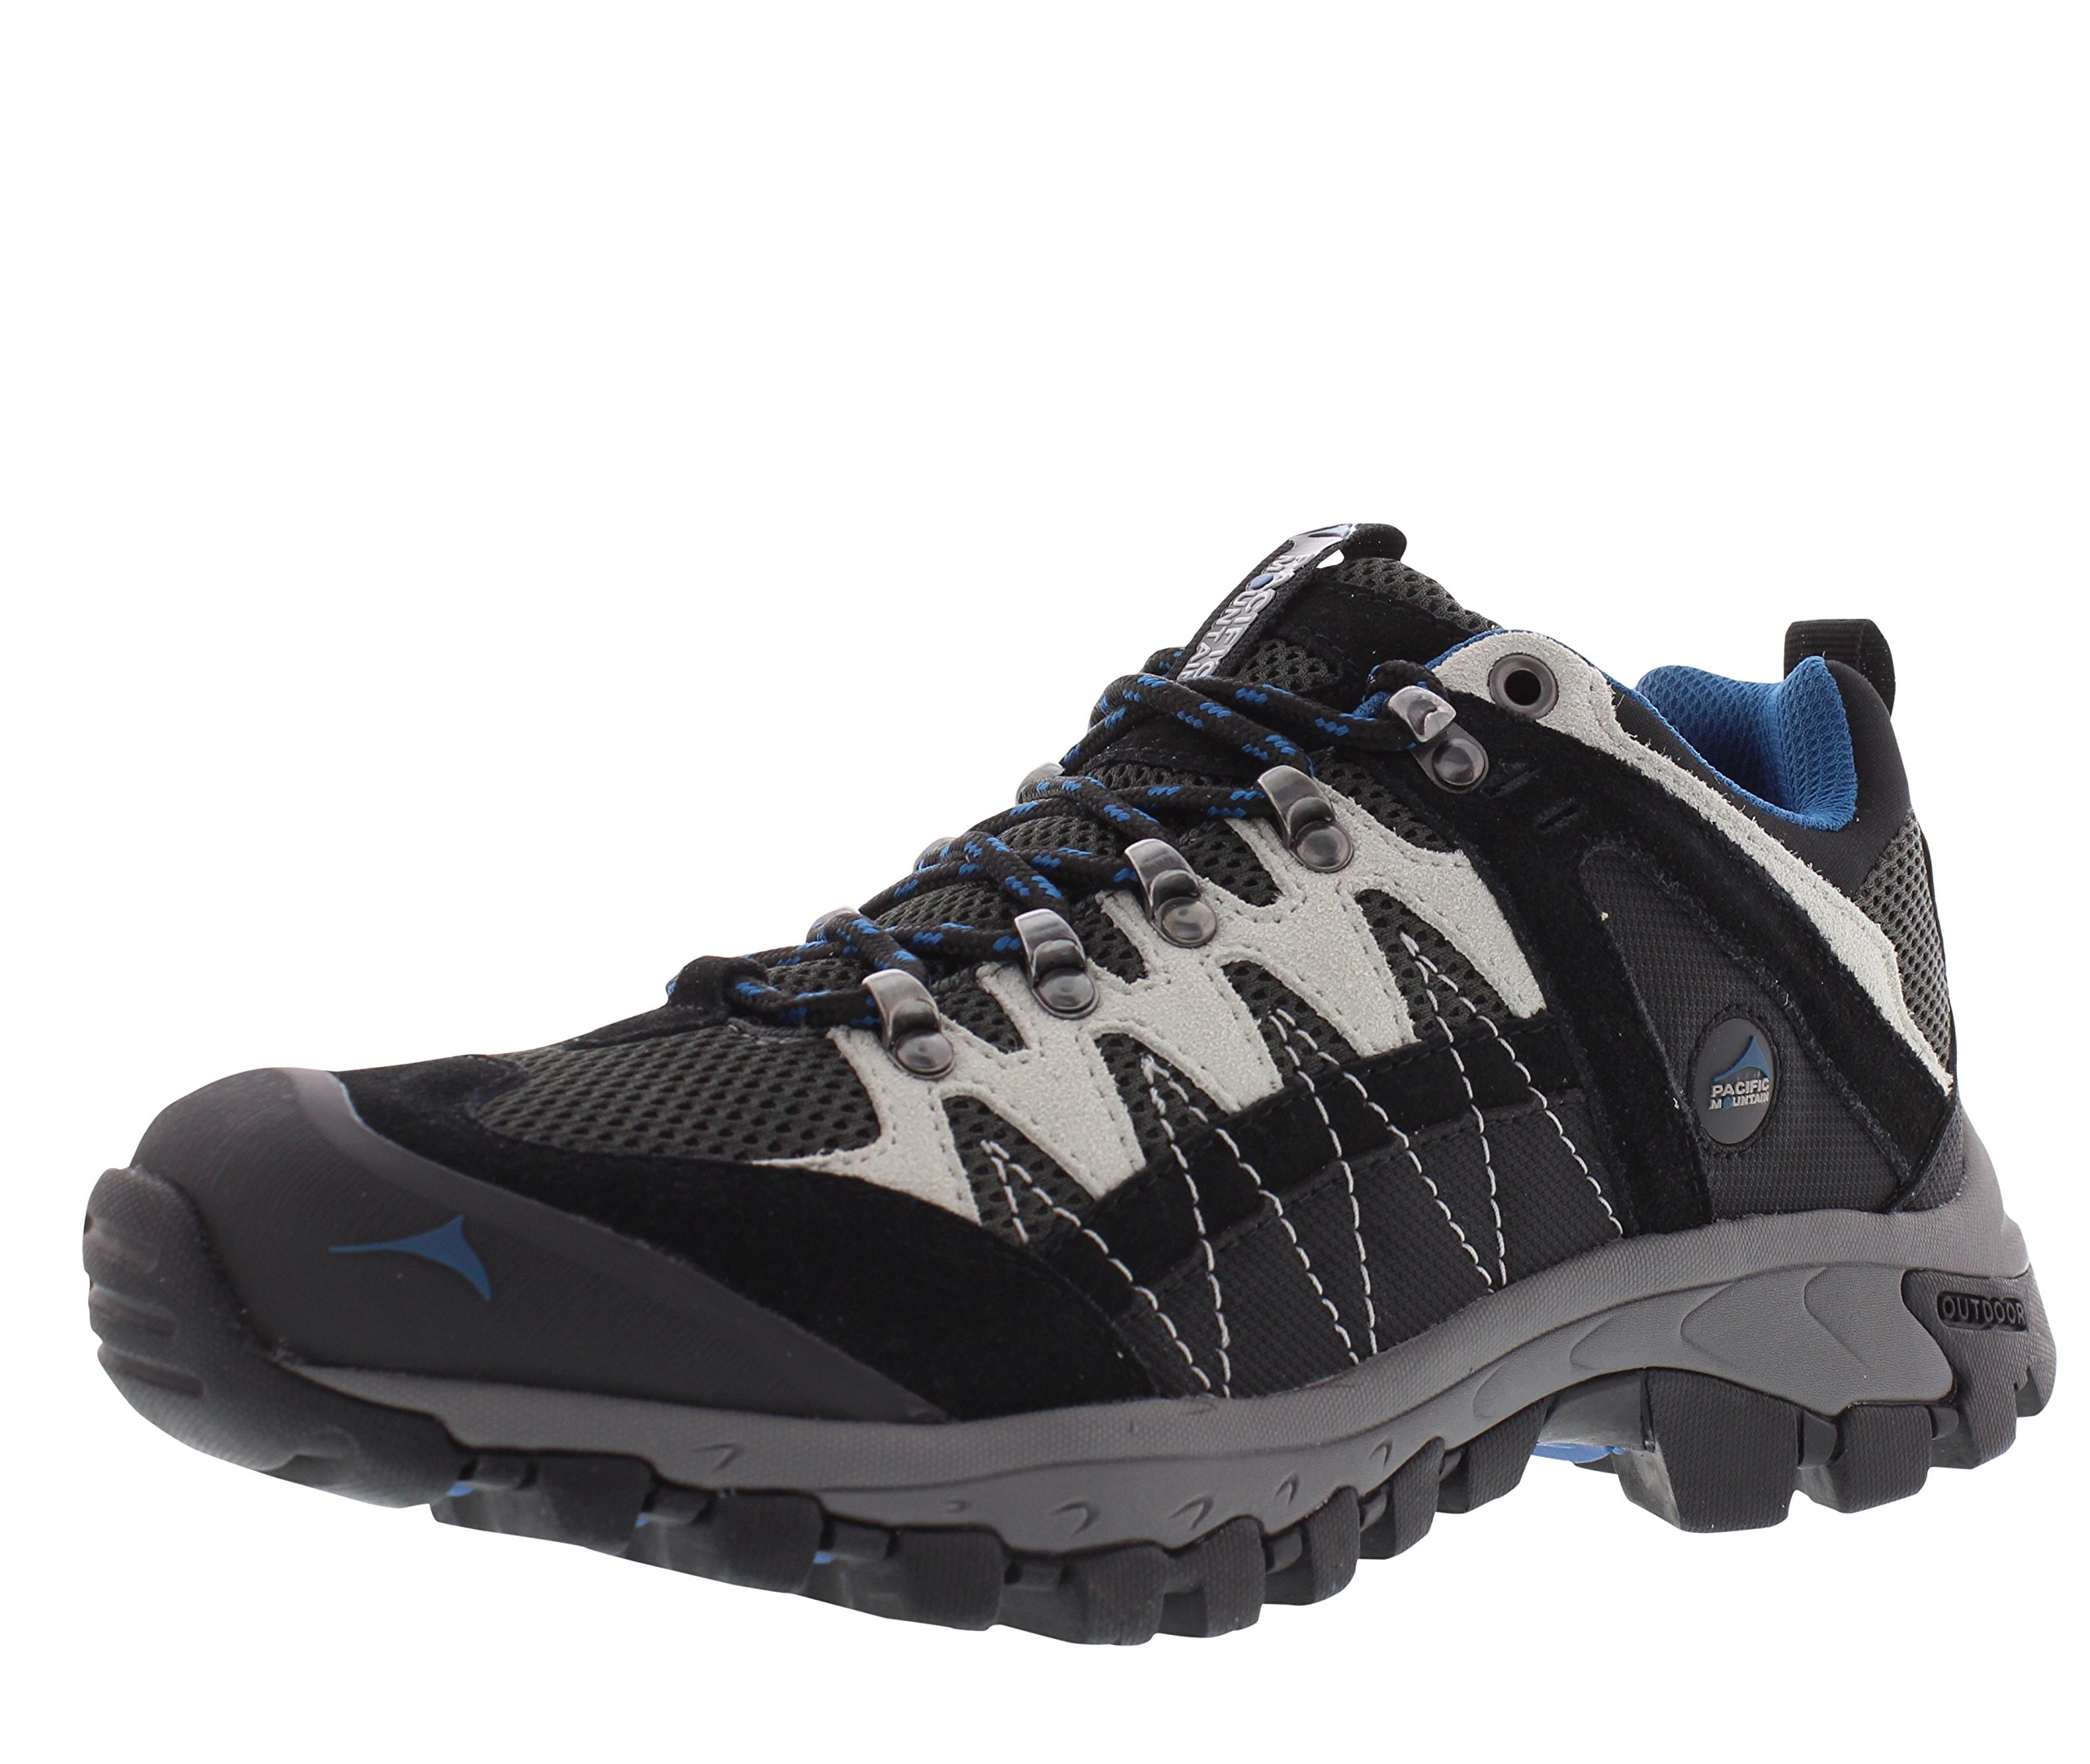 Pacific Mountain Crater Men's Hiking Backpacking Low-Cut Grey/Black/Blue Boots Size 13